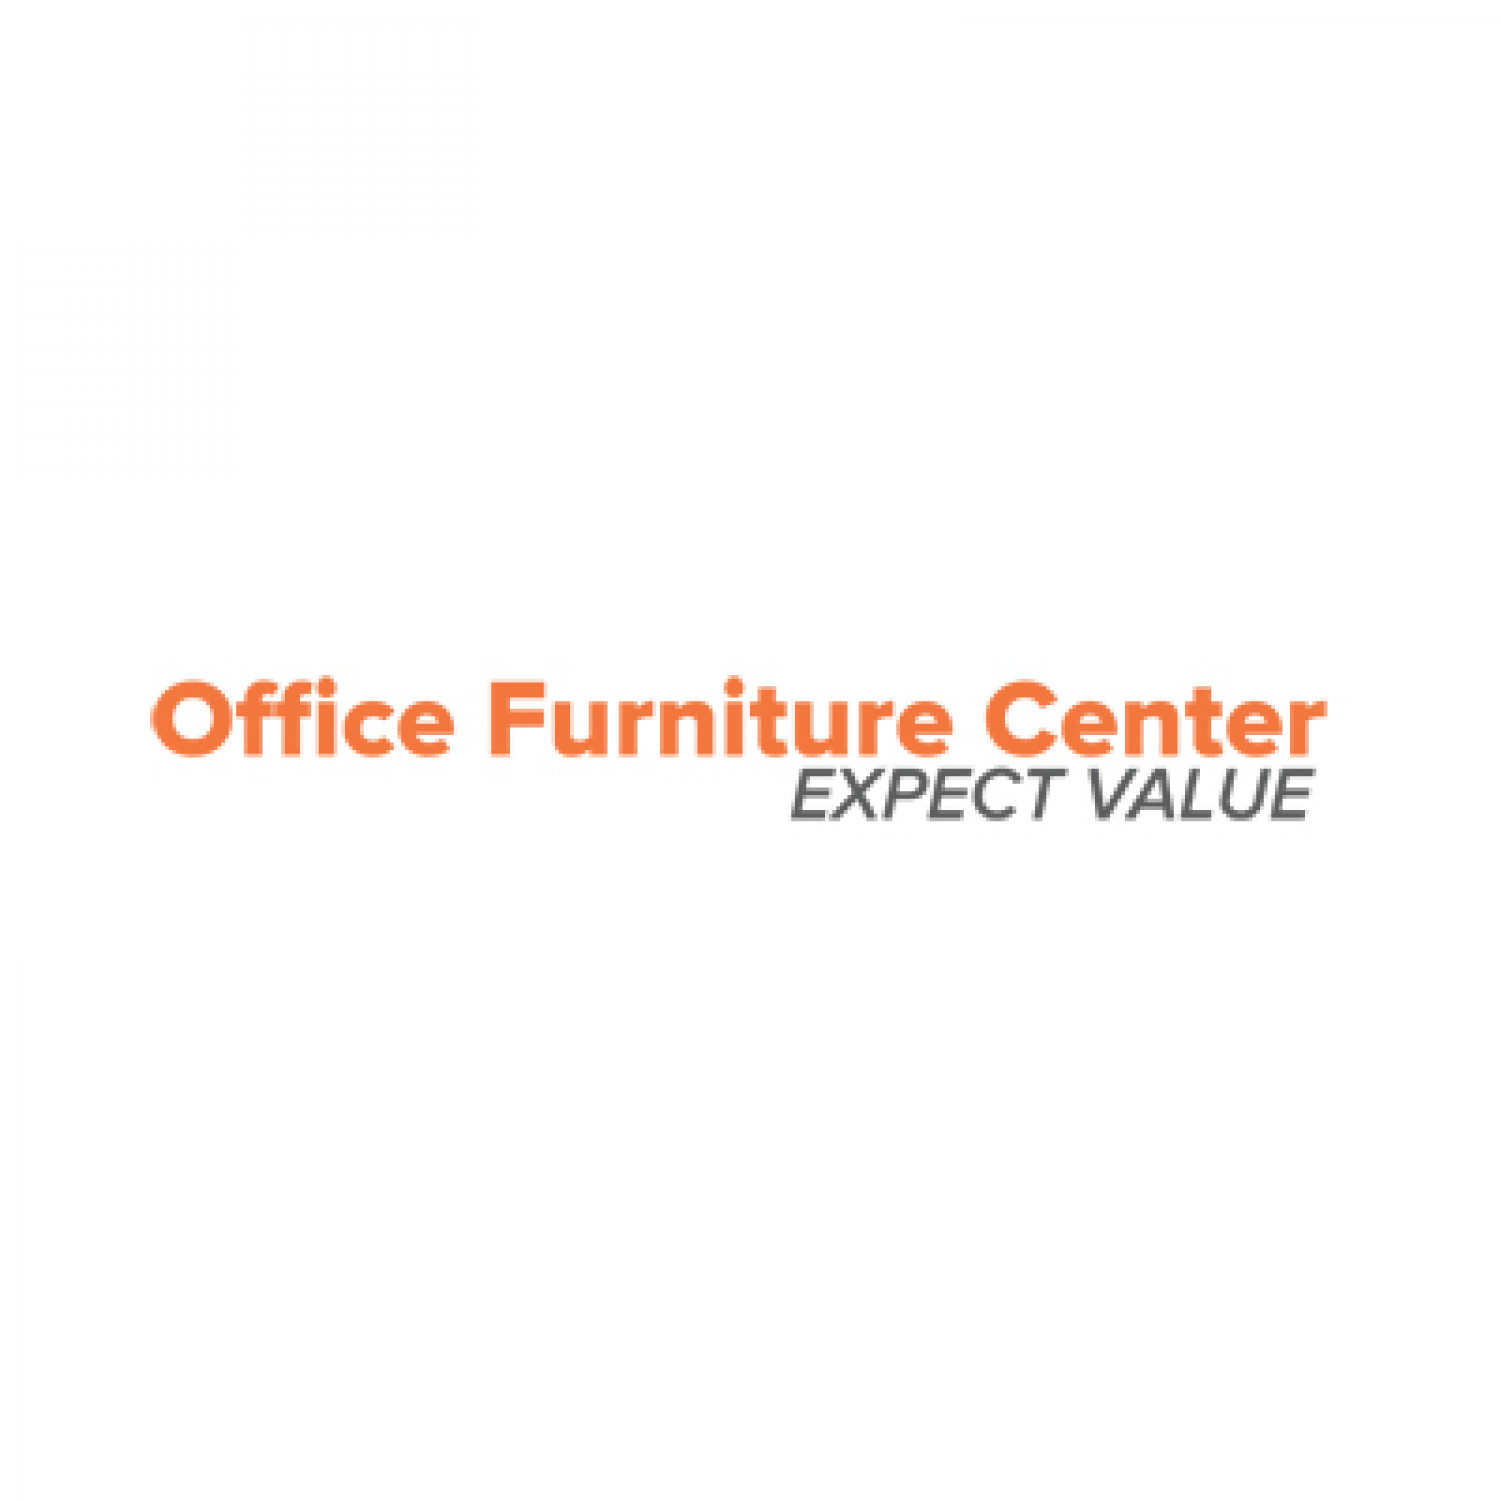 Office Furniture Center Infographic